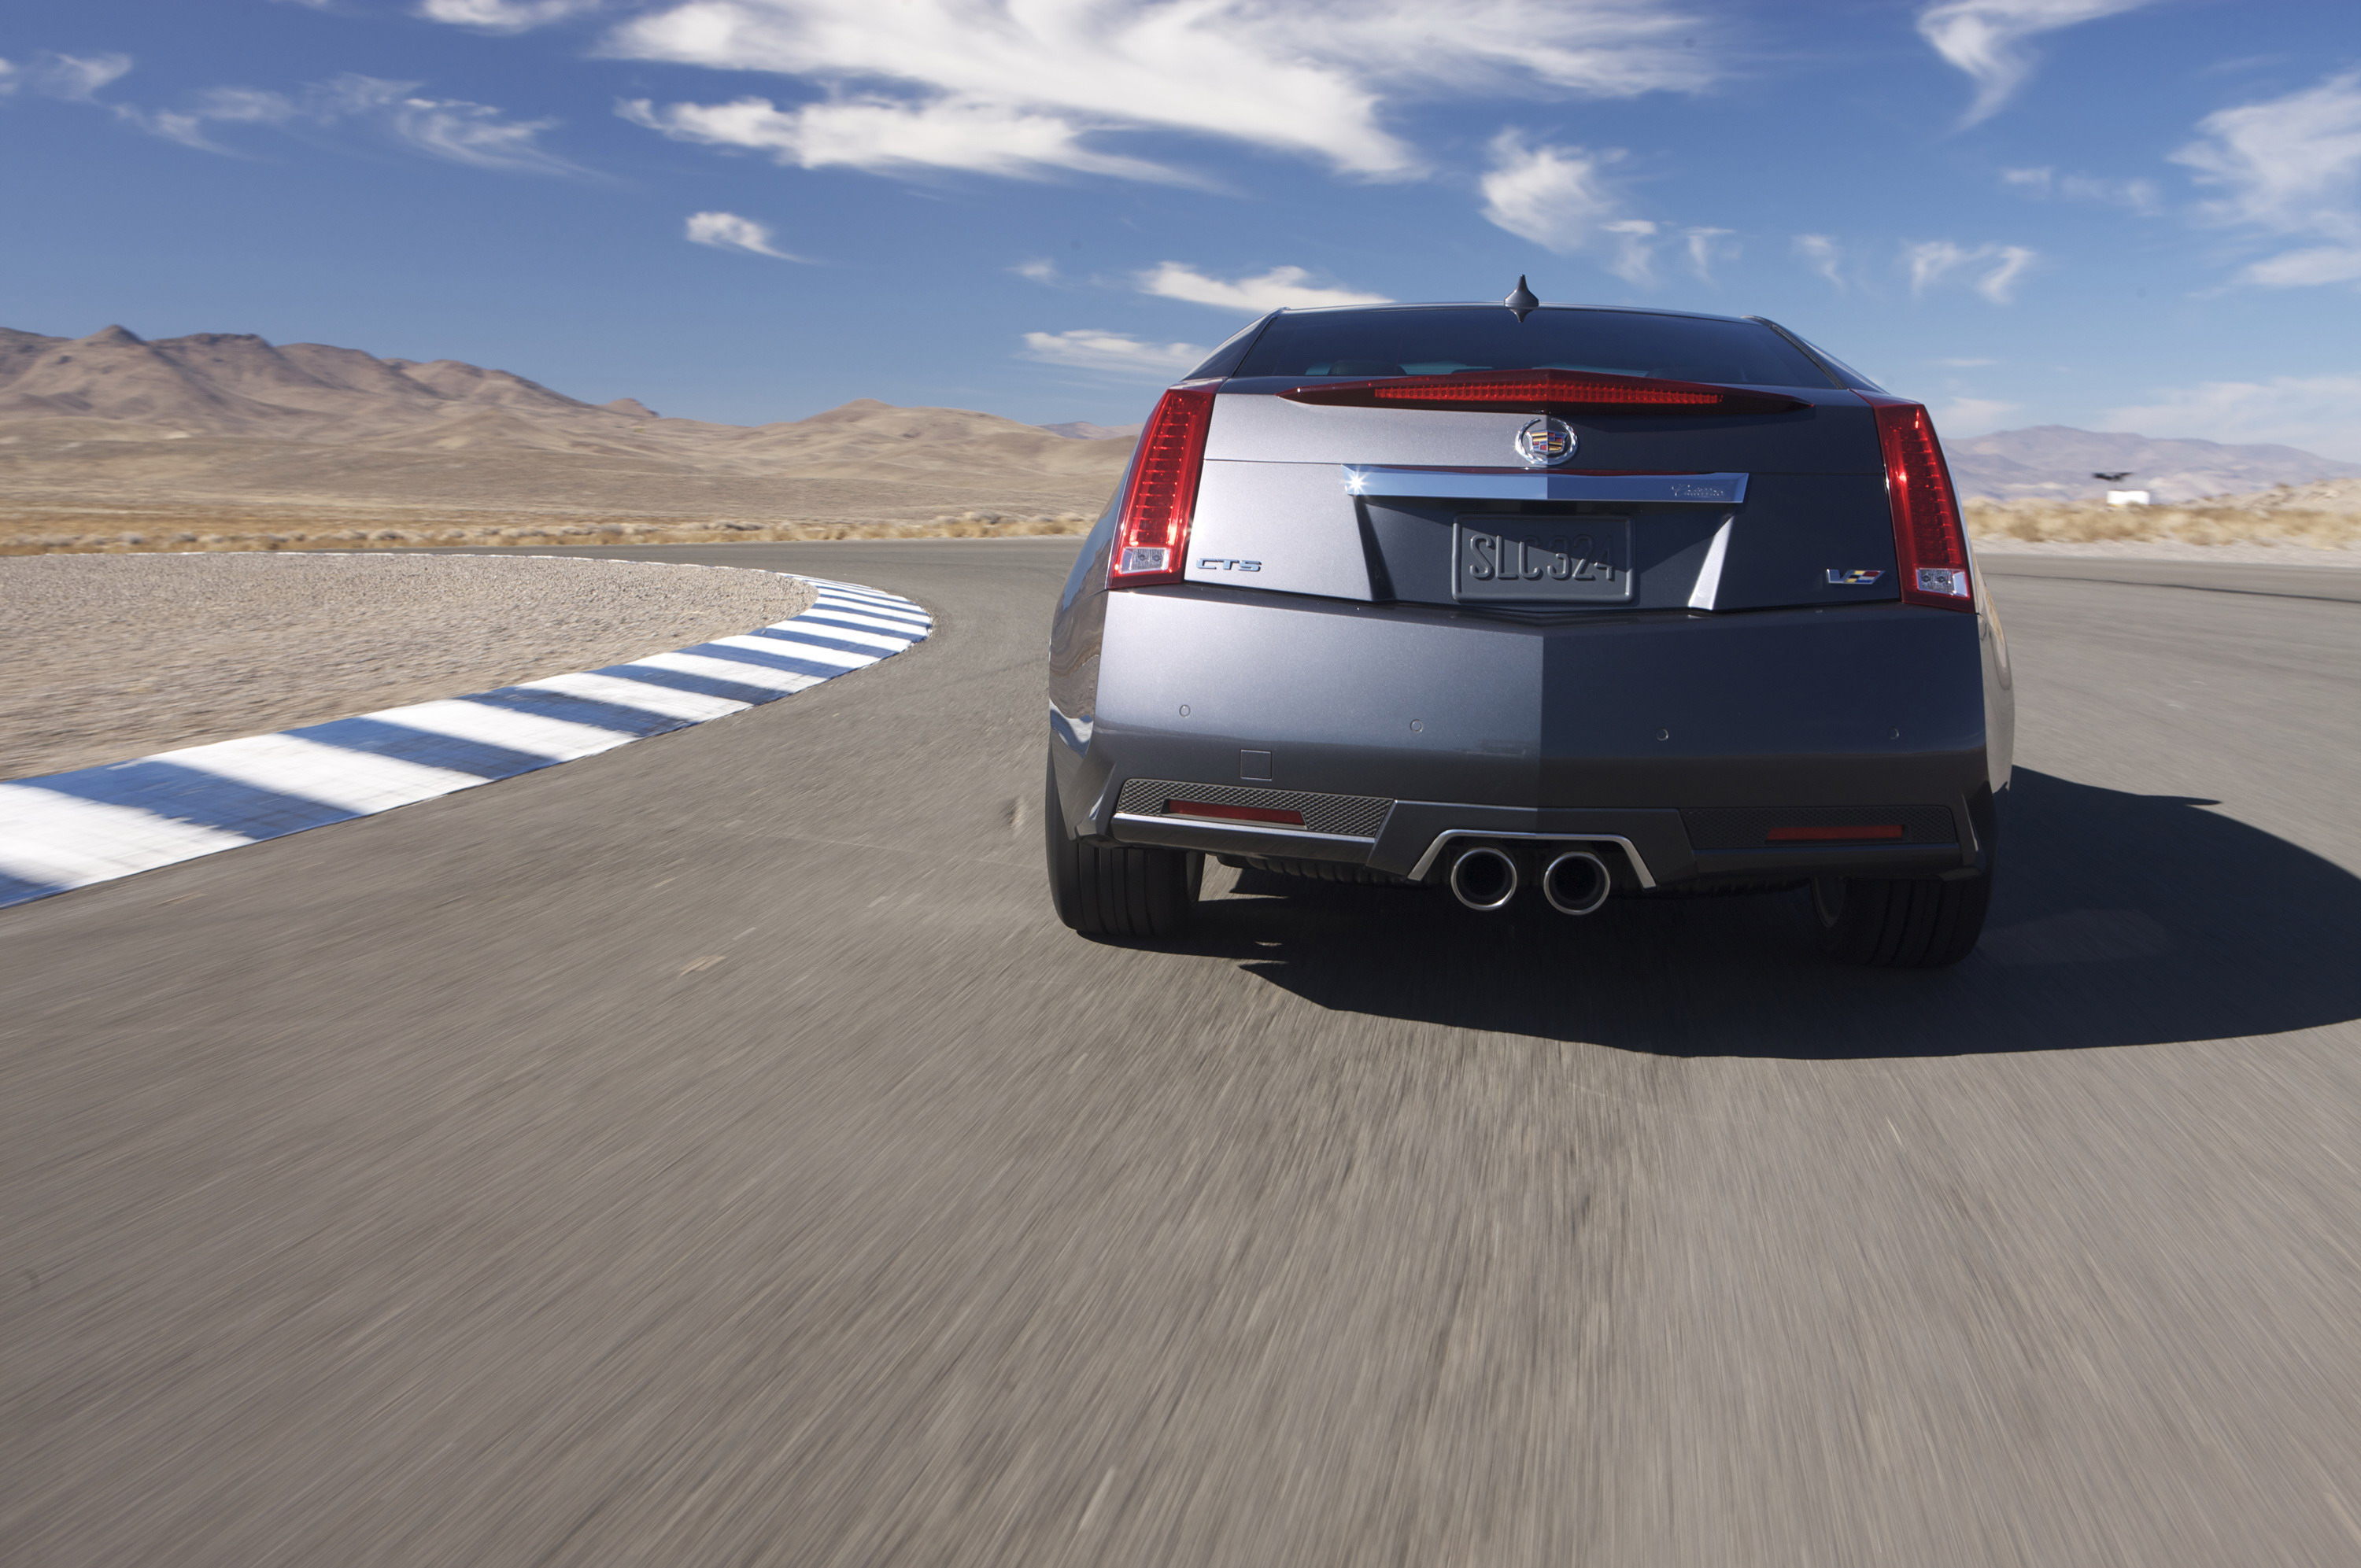 v cadillac specs cars cts present coupe